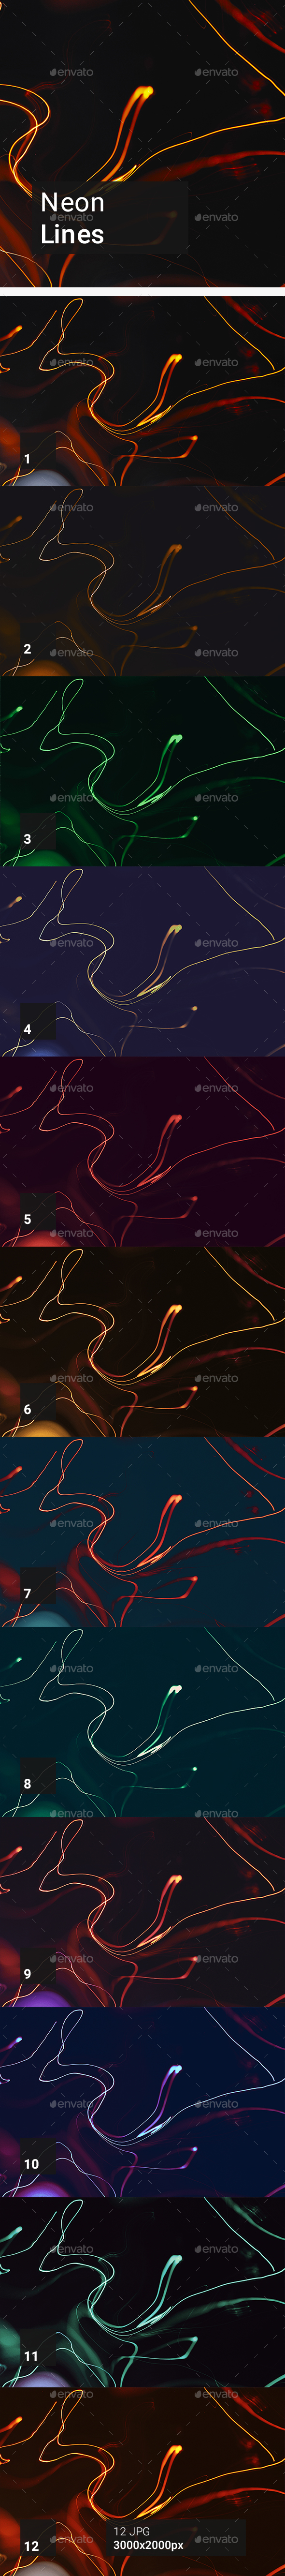 Neon Lines Backgrounds - Abstract Backgrounds